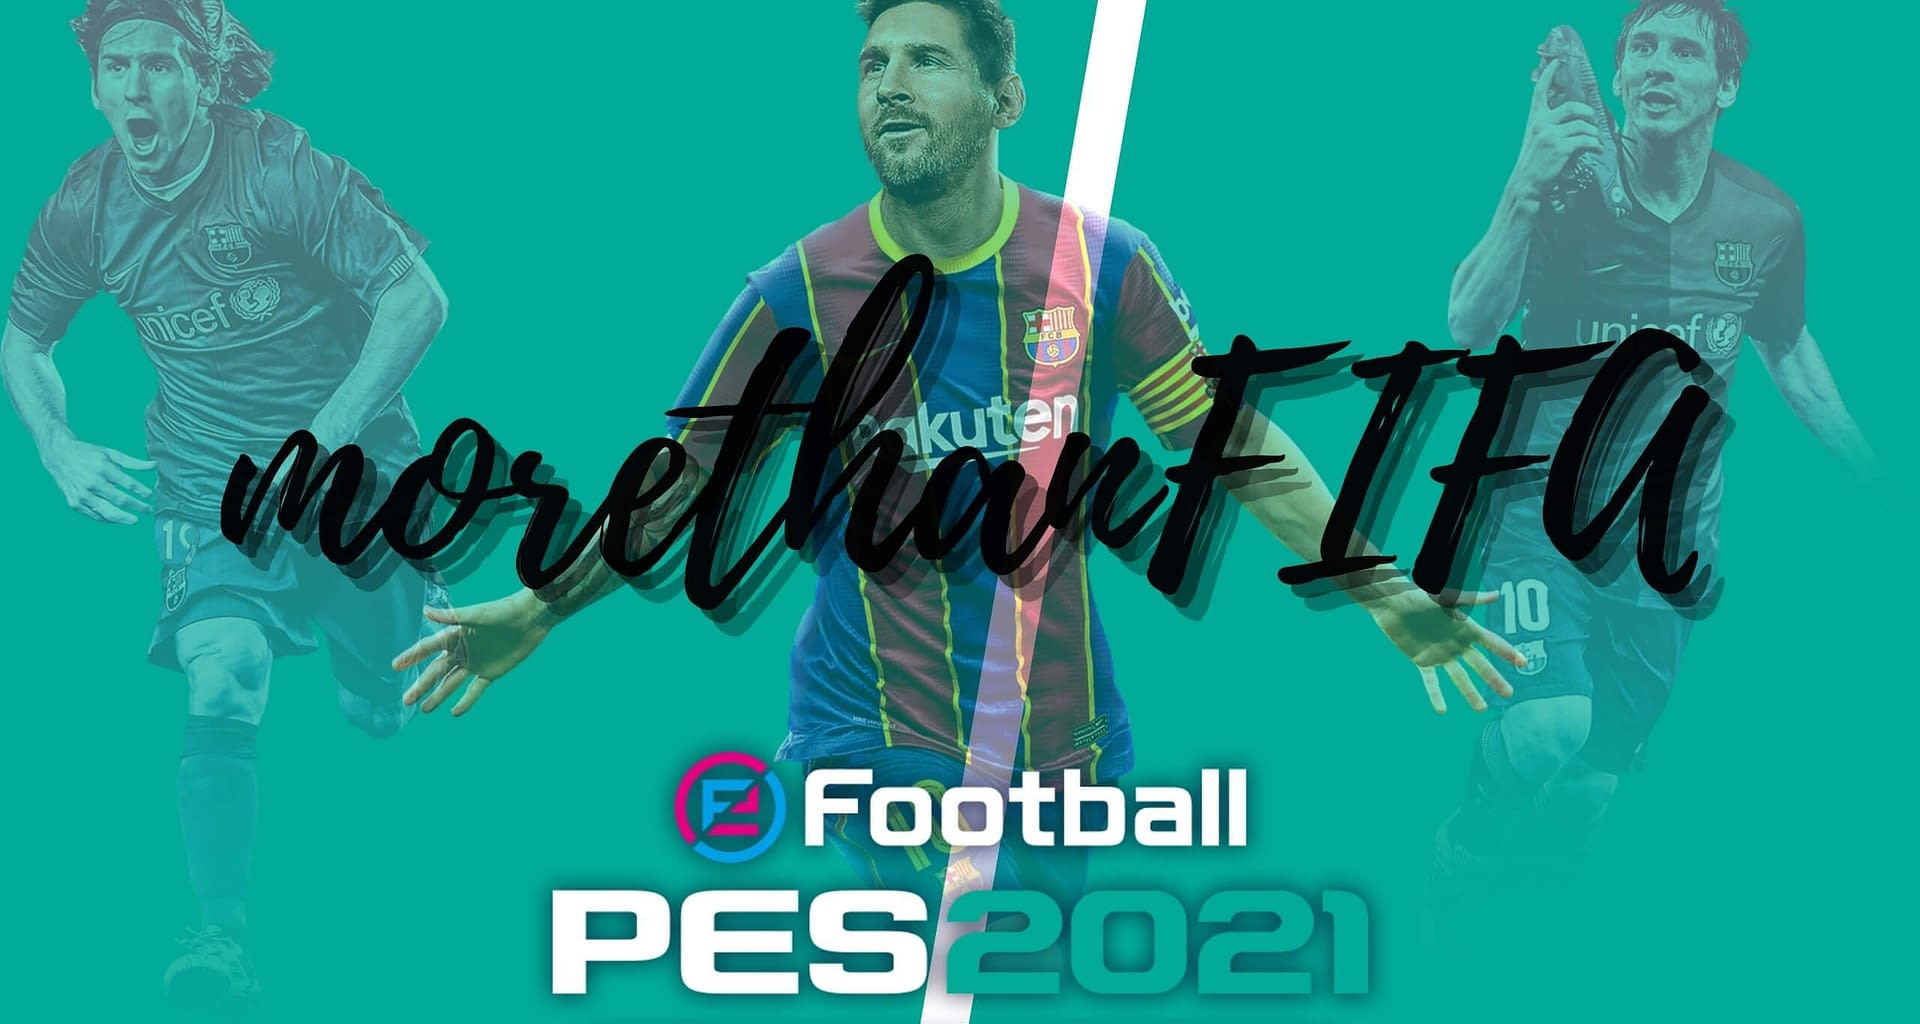 PES 2021 Patch PS4 morethanFIFA